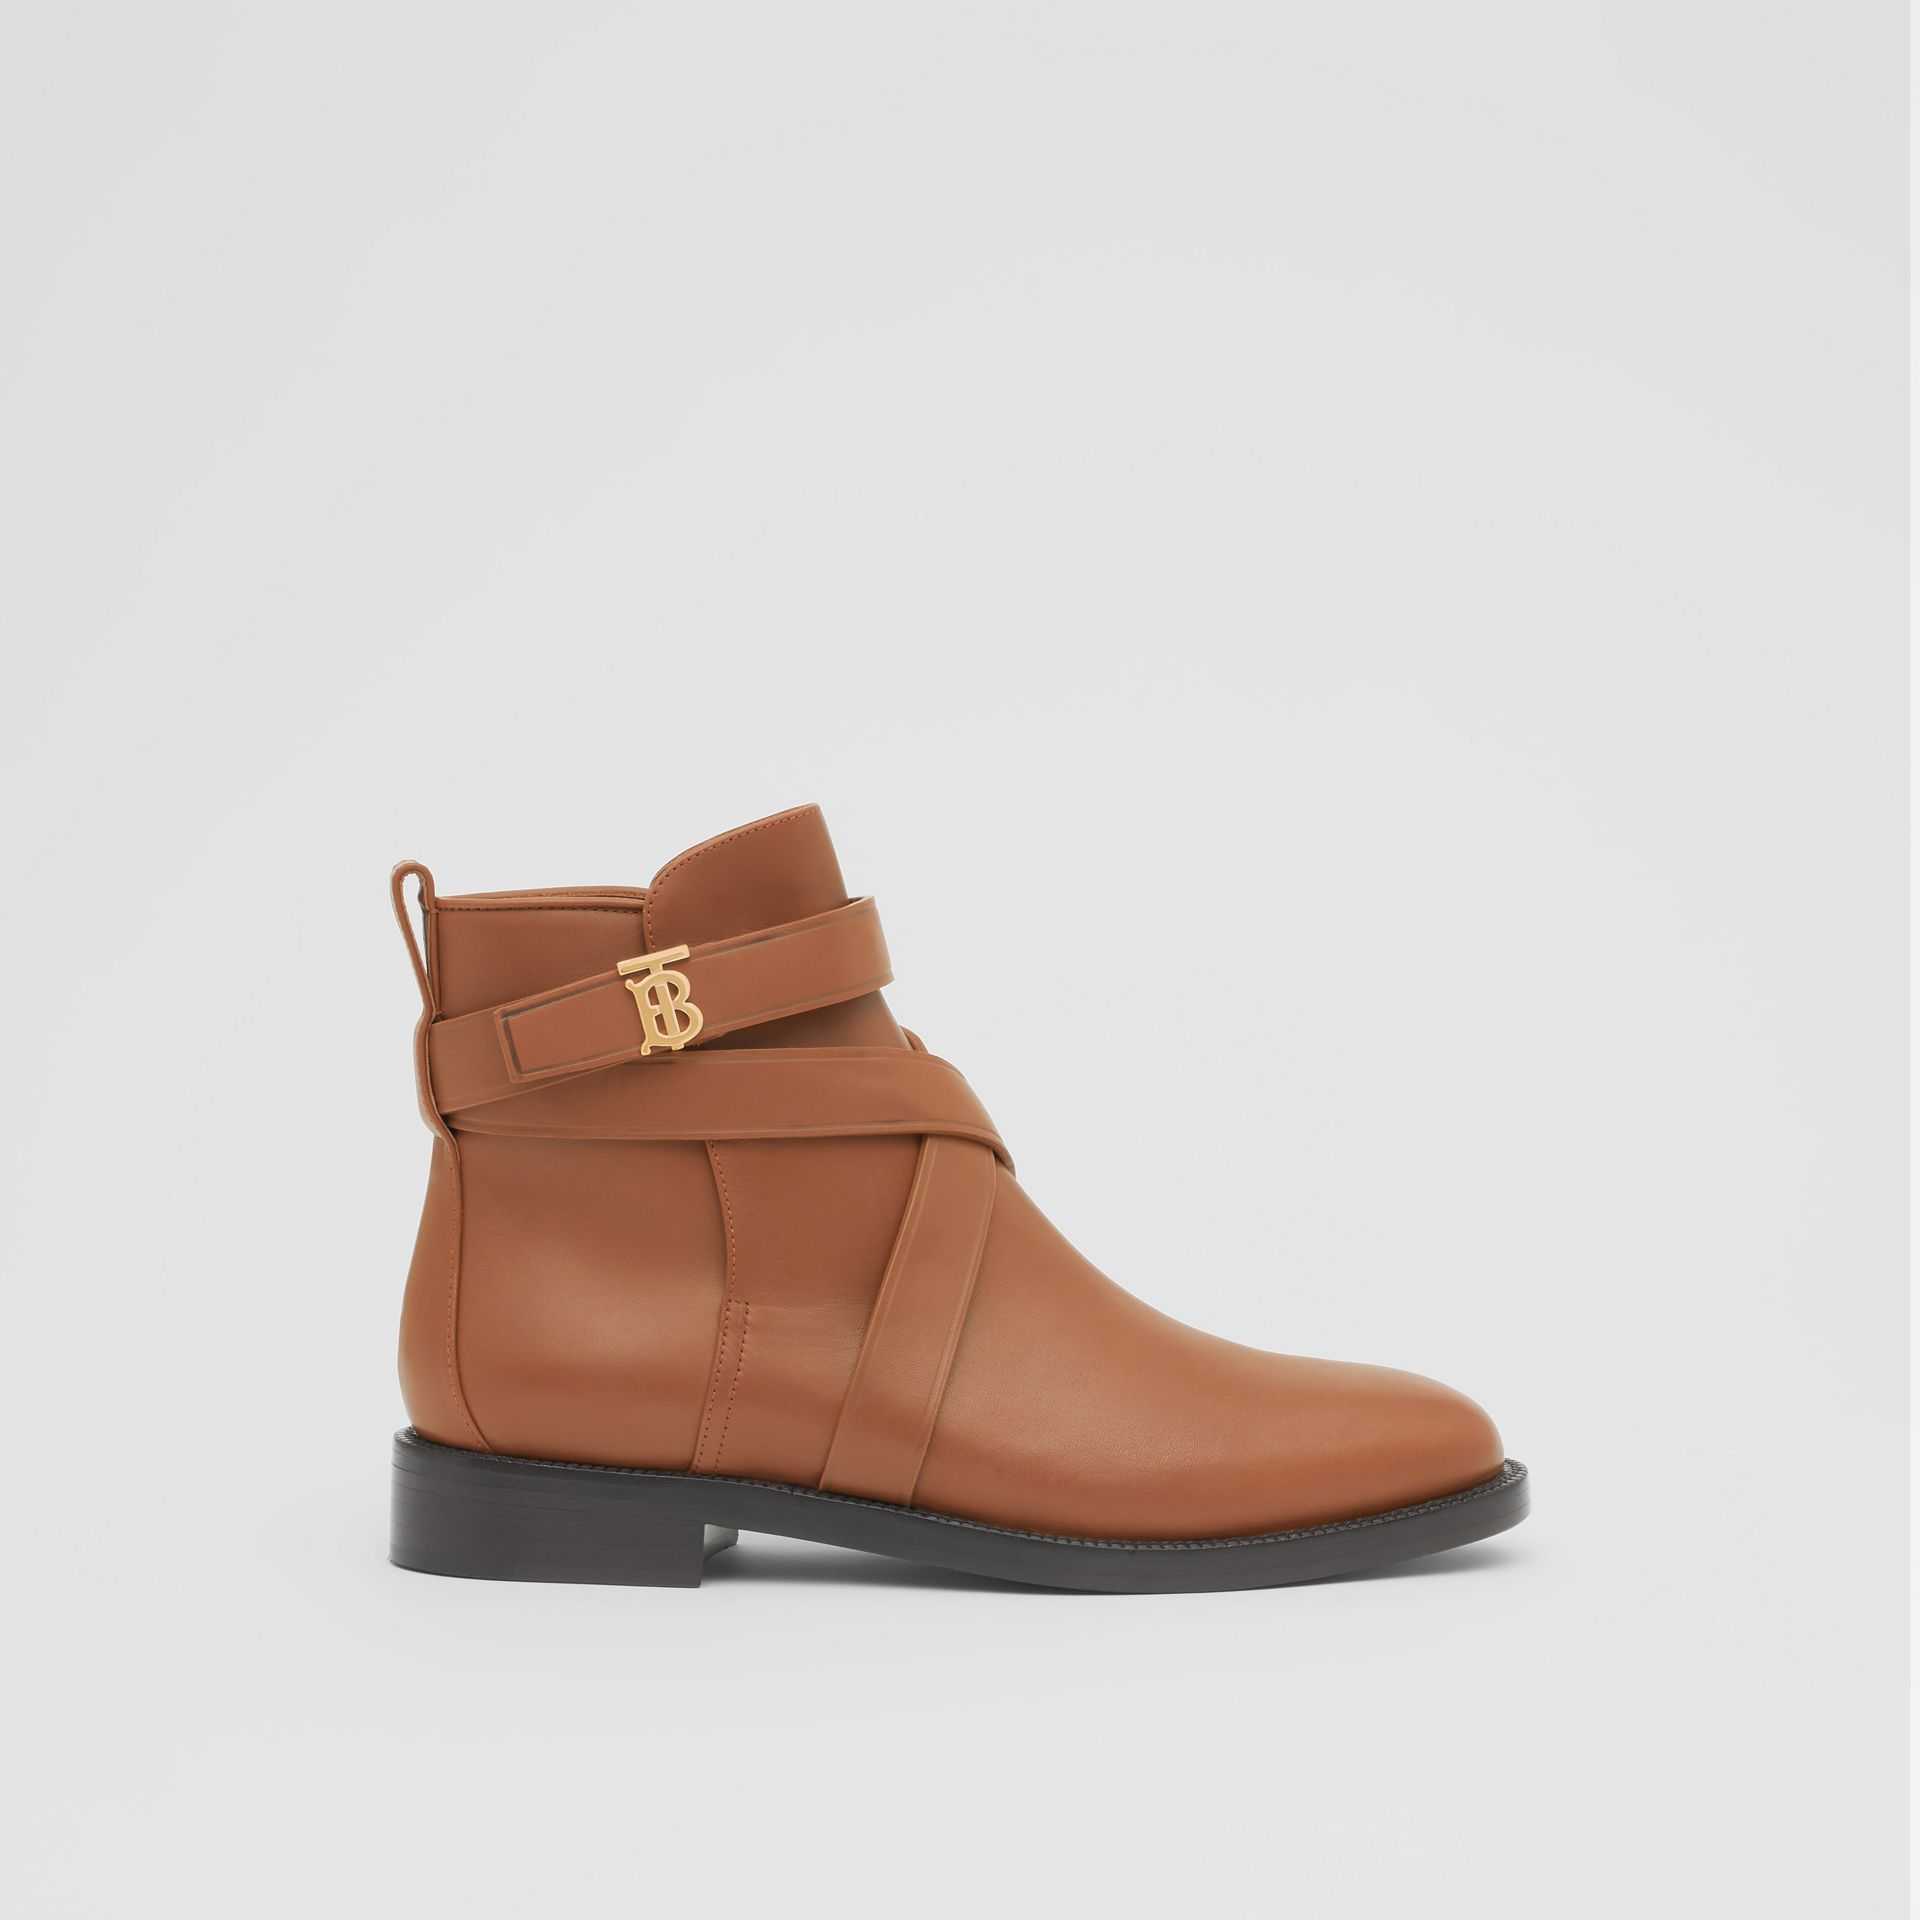 Monogram Motif Leather Ankle Boots in Tan - Women | Burberry - gallery image 4